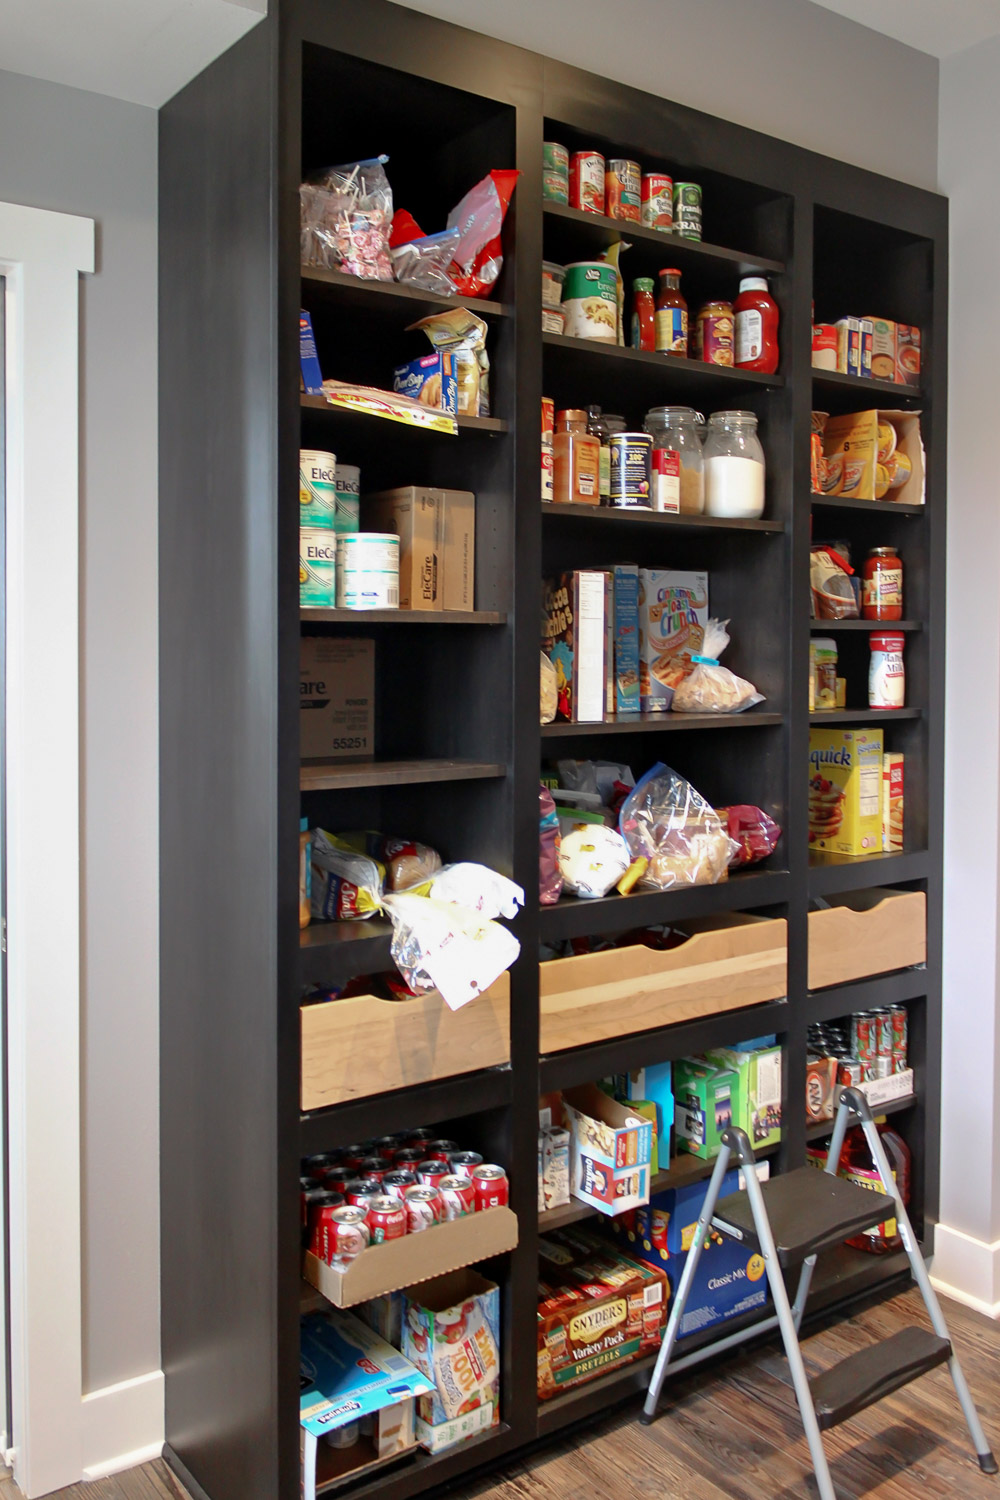 - This walk-in pantry contains shelves, roll-outs, and even the refrigerator, freezer and microwave (not pictured here).